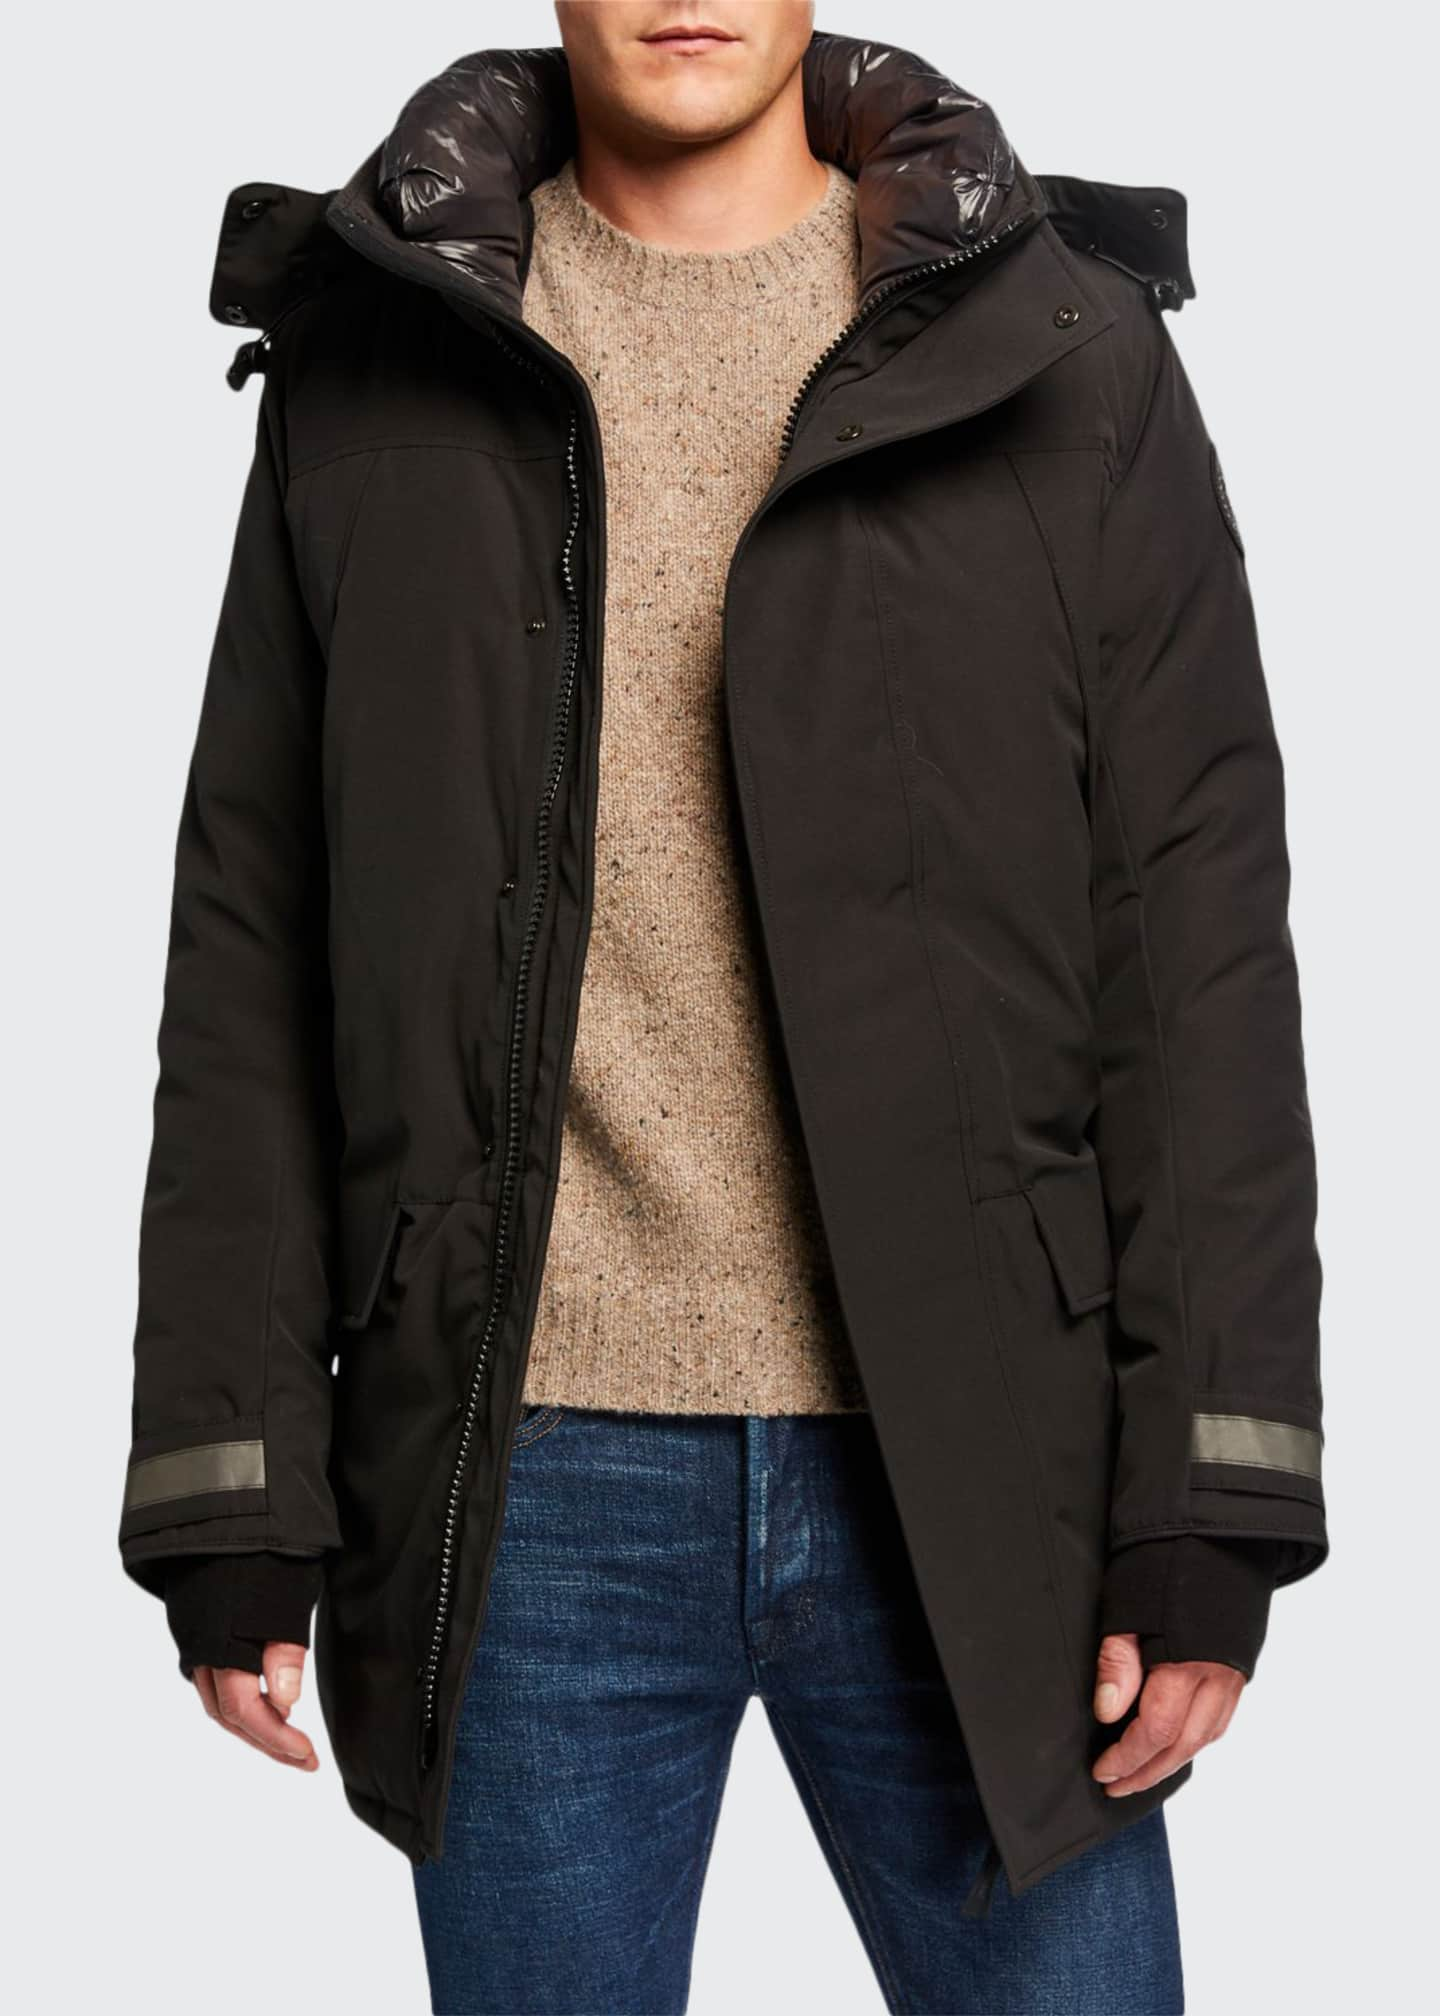 Canada Goose Men's Sherridon Fur-Trim Hooded Parka